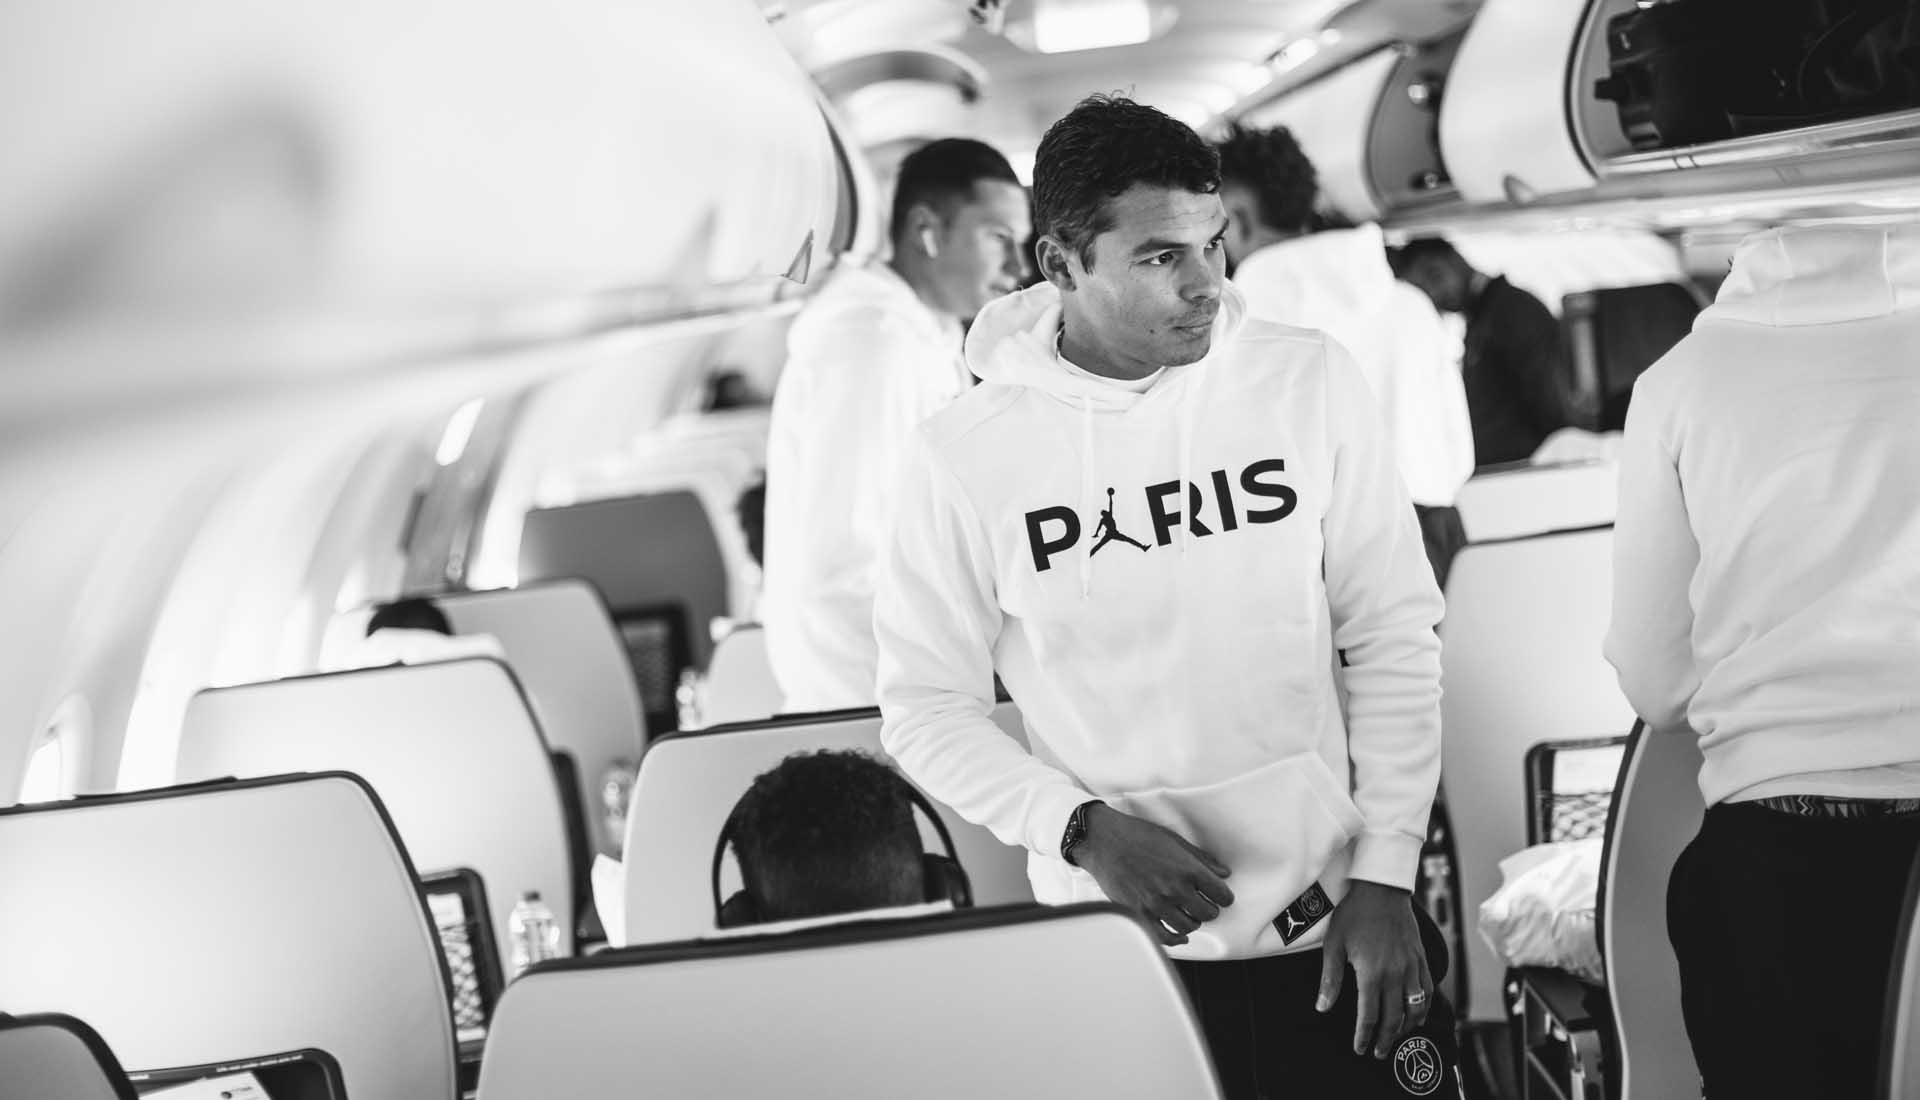 29604b90f7ae2 PSG Squad Debut Latest Jordan Collection on Manchester Trip ...